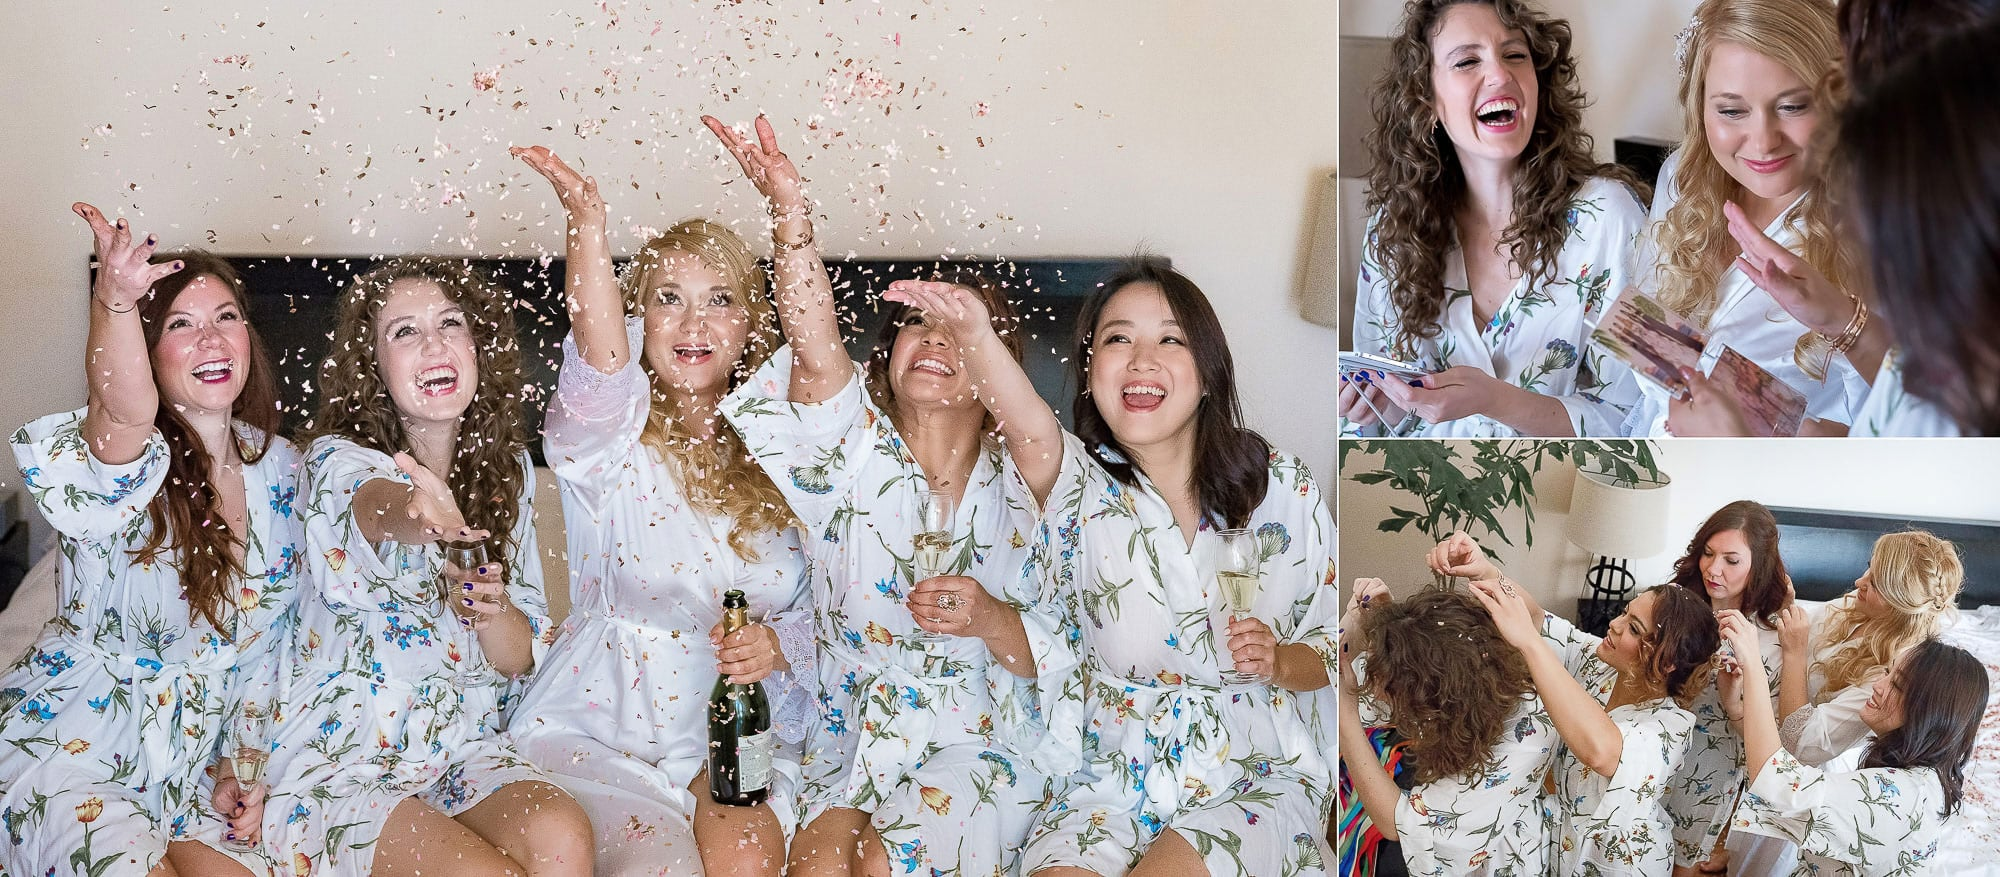 The bride and bridesmaids tossing confetti when they get ready